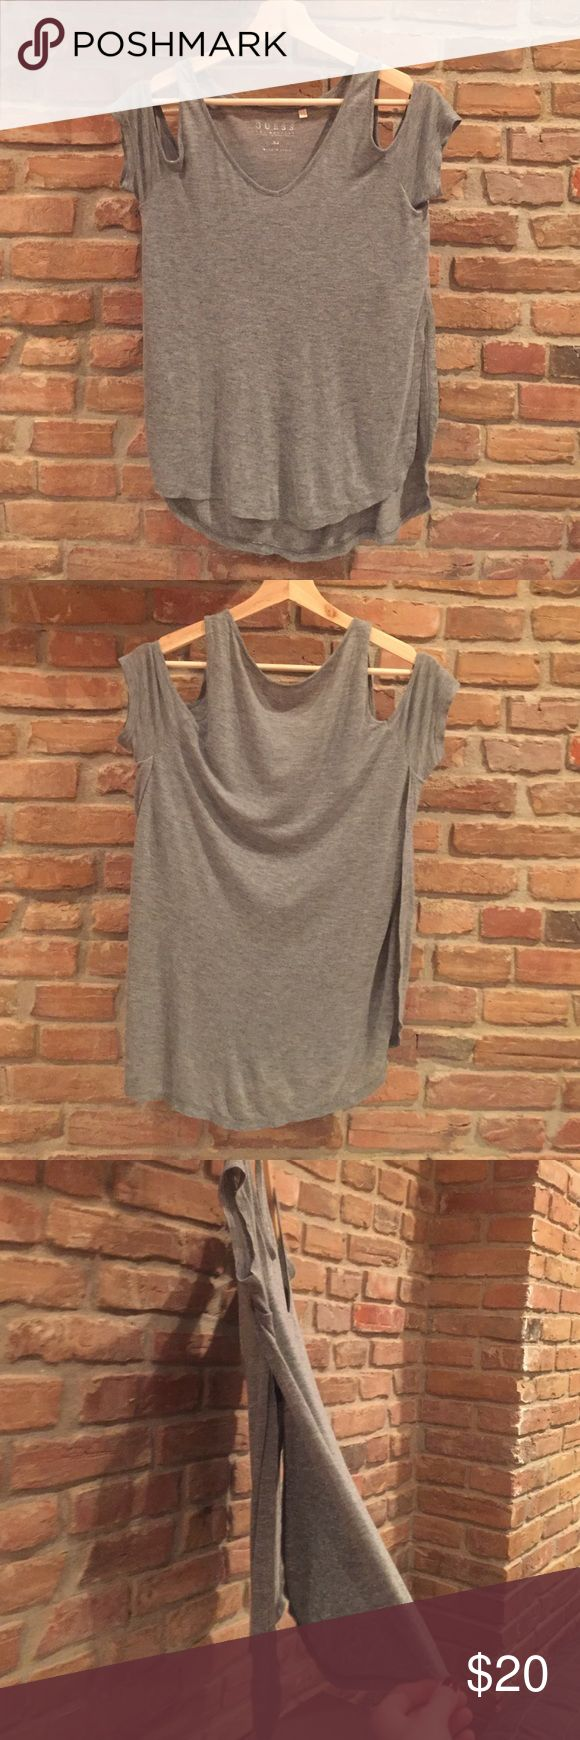 Guess Exposed Shoulder Shirt 🌞 Pretty grey Guess shirt with exposed shoulders and side slits ~ fits loosely ~ can dress it up for going out or wear it casually 🌞 Guess Tops Tees - Short Sleeve